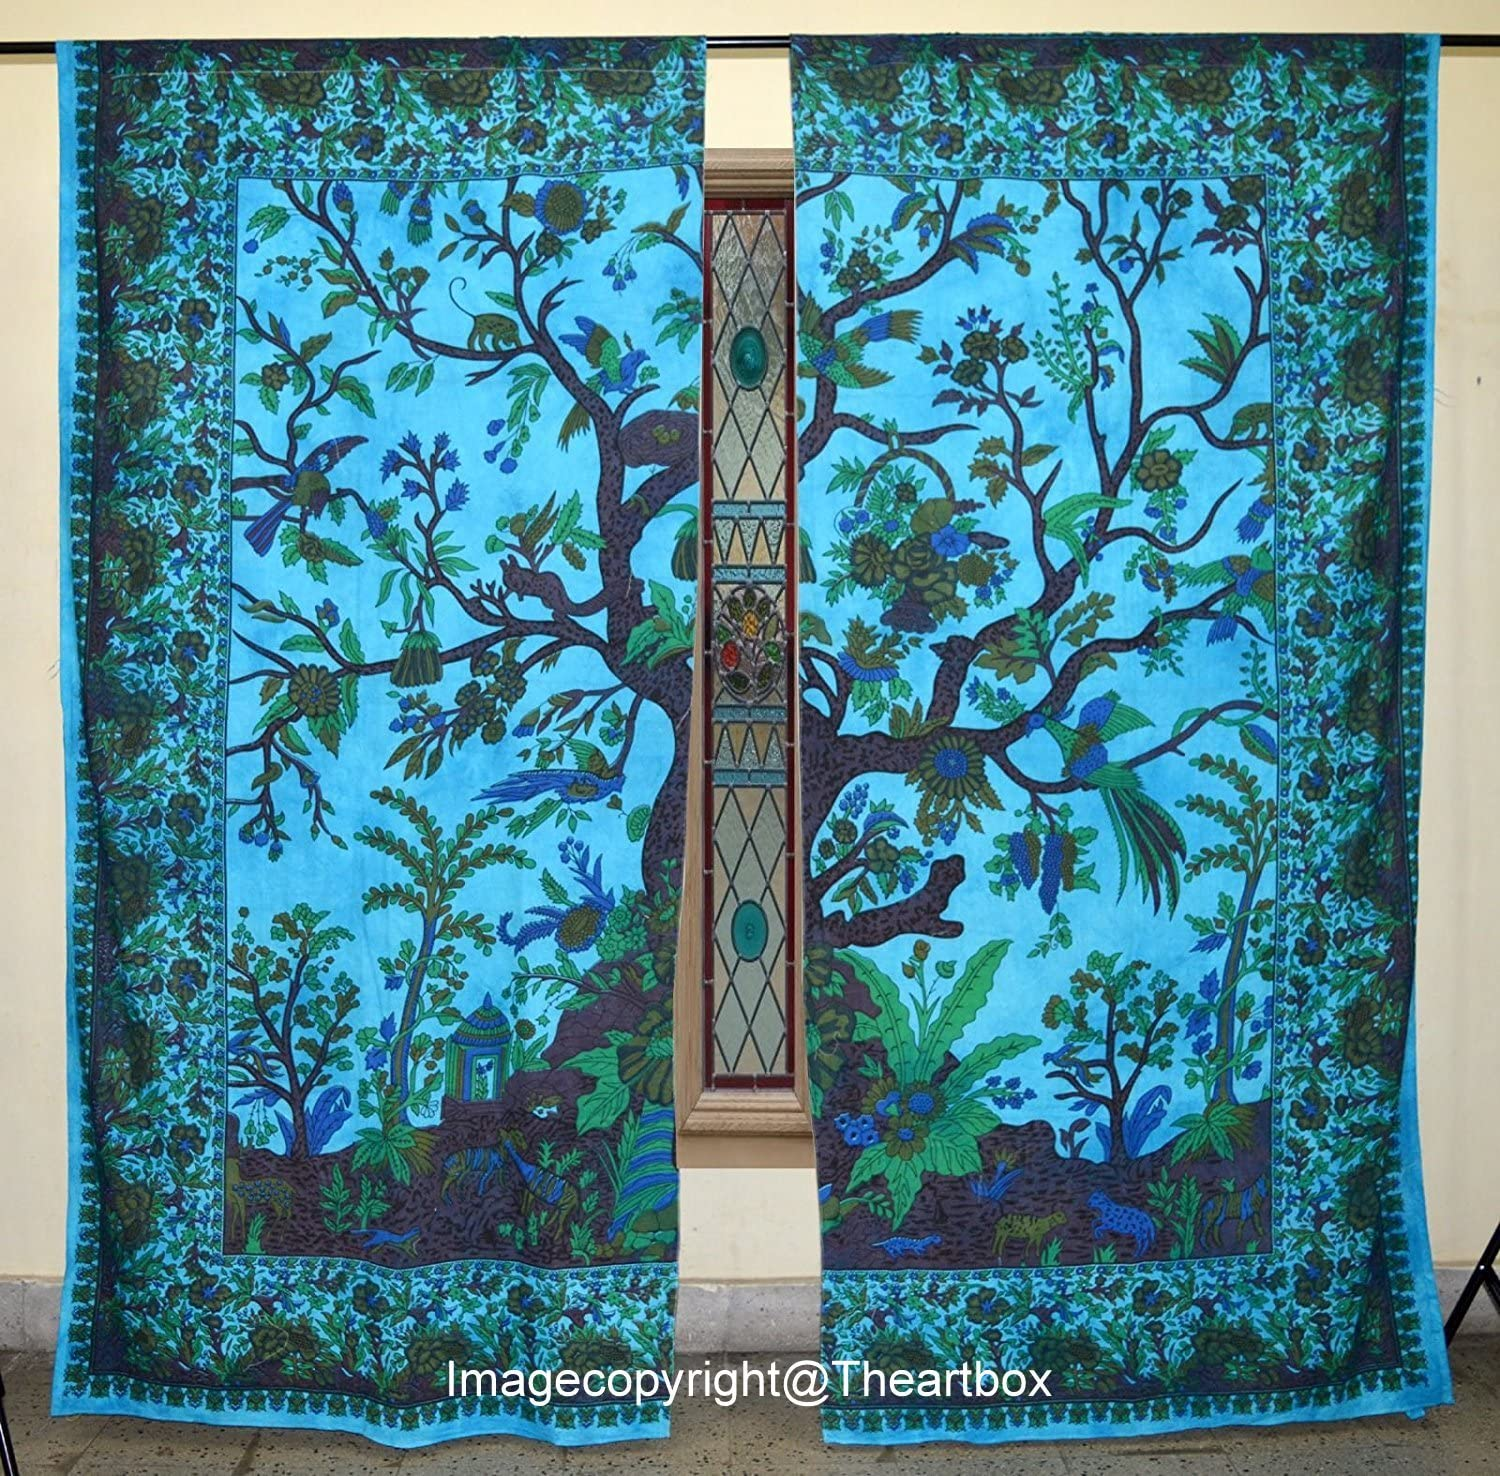 THE ART BOX Window Curtains Indian Window Drapes Set of 2 Tapestry Window Curtains Hanging Valances for Window Room Divider (Turquoise Tree, 80x82 Inches or 203x210CM)